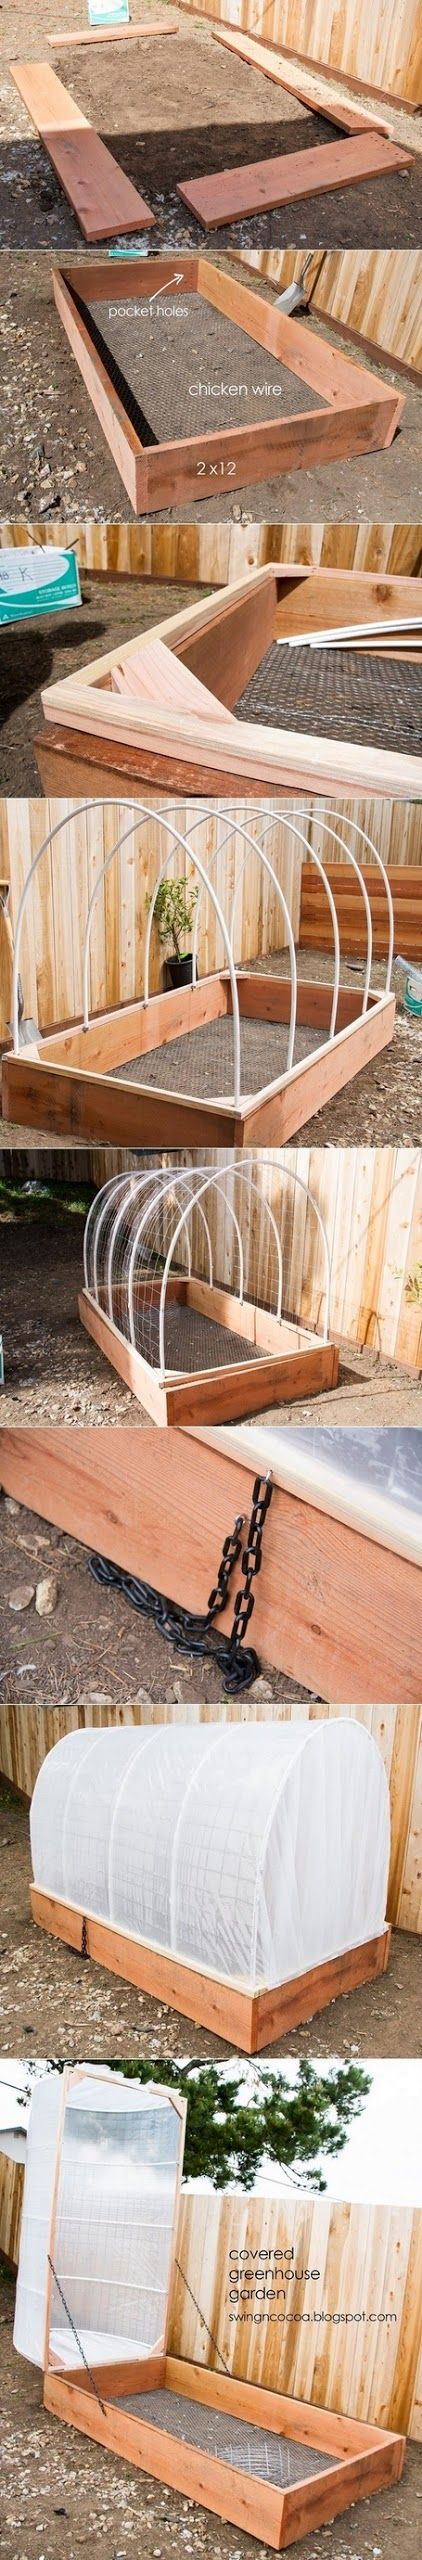 How To Building a Small Greenhouse atop a raised bed. I would not use treated or red wood because it interferes with the micro-culture you want to flourish in organic soil amendments.